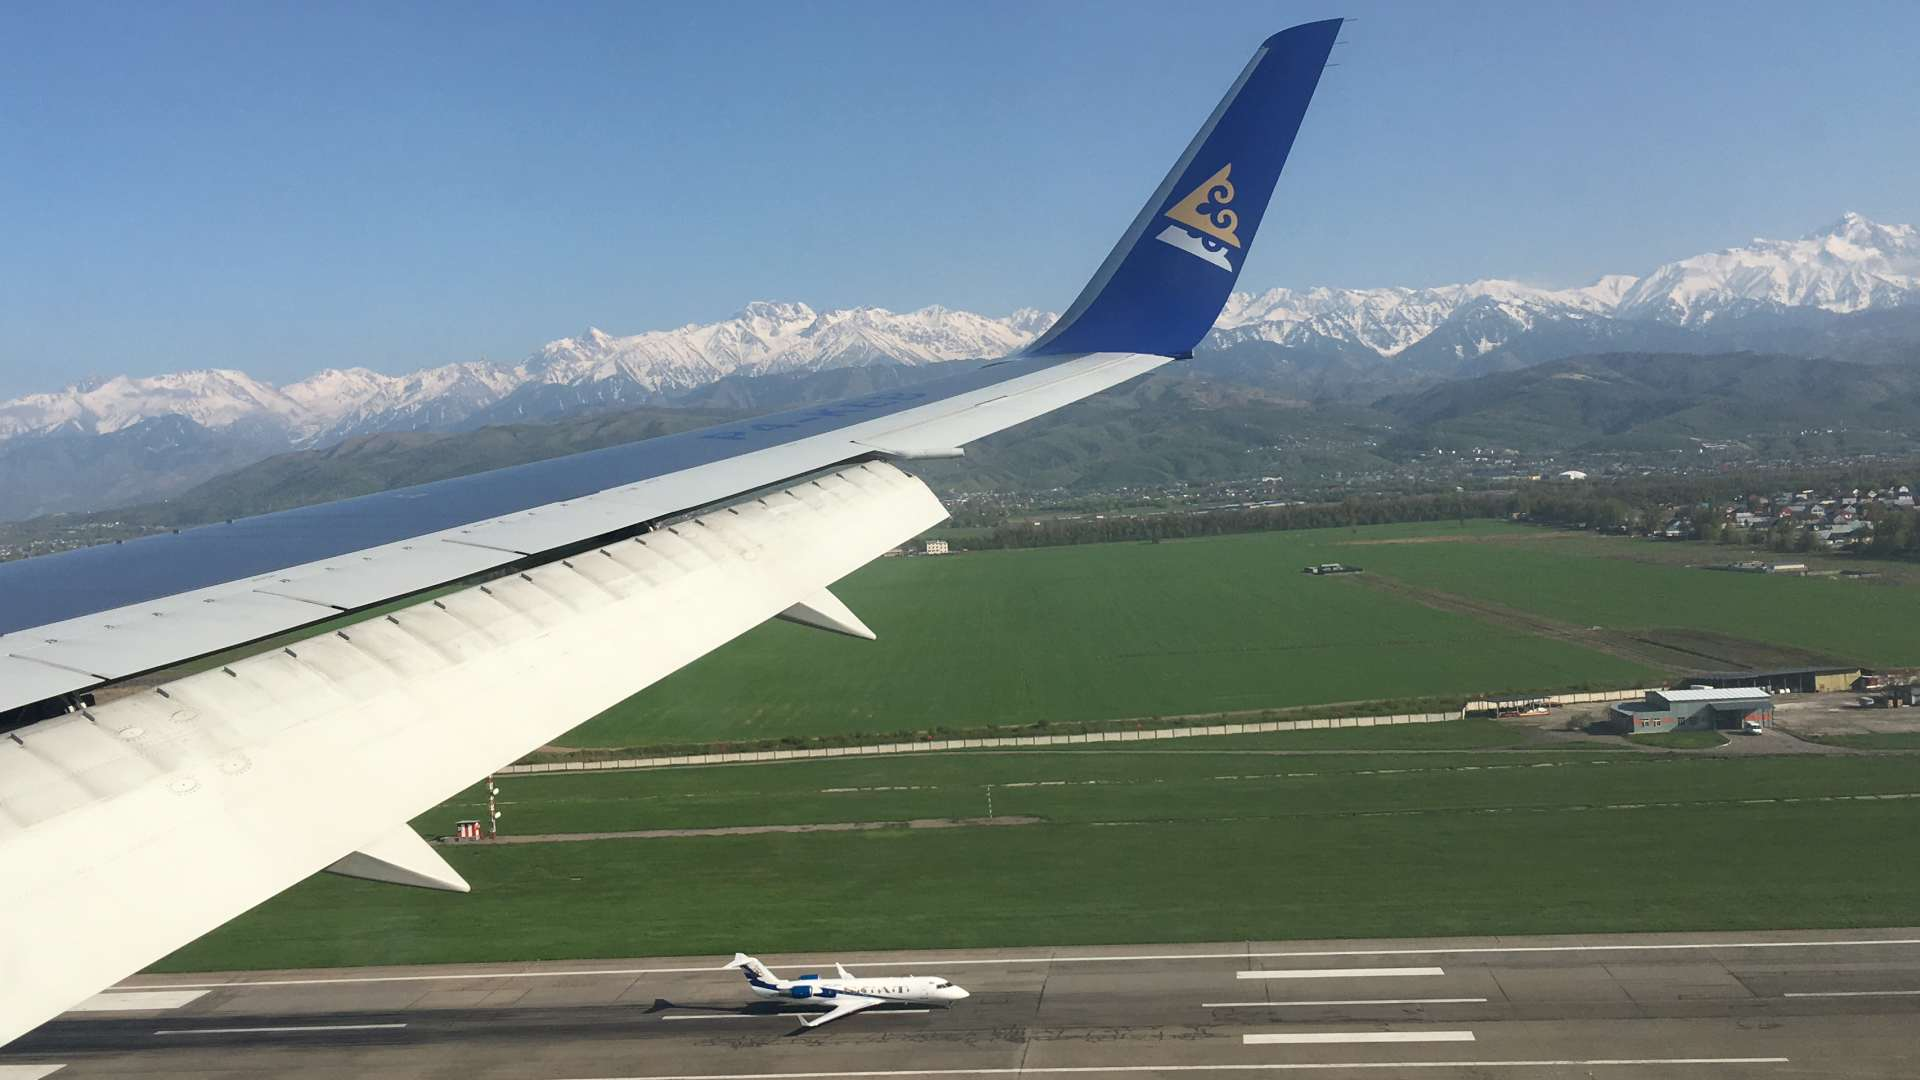 Air Astana landing in Almaty, Kazakhstan, with Alatau Mountains in the background